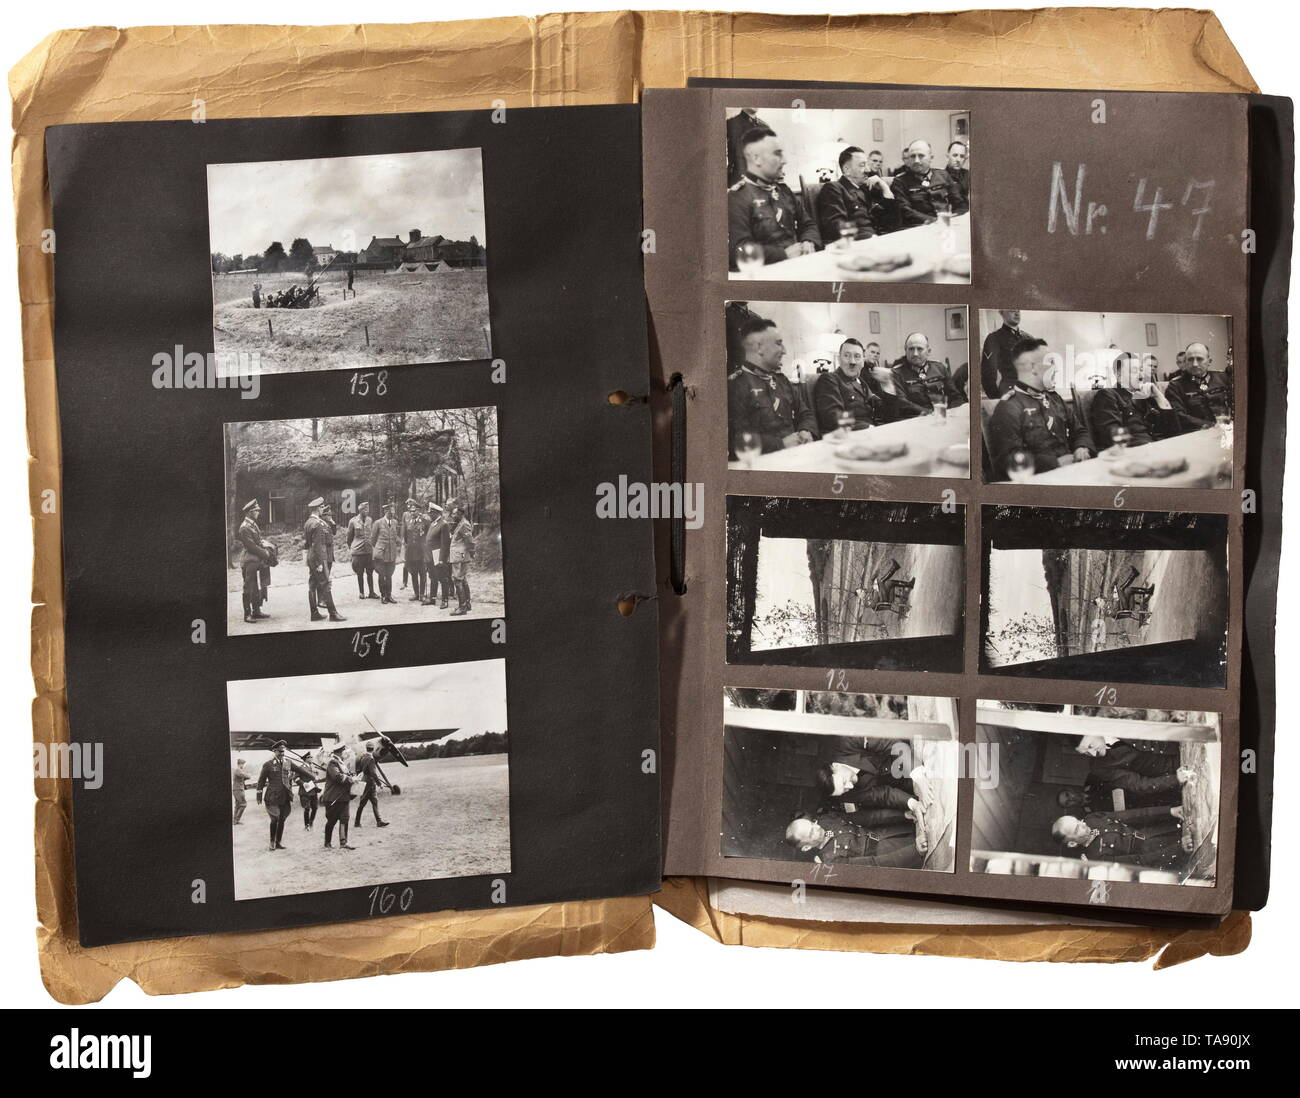 Adolf Hitler - three photo albums with images of the Führer headquarters 'Wolfsschlucht' (Wolf's Gorge) in Bruly-de-Pesche 199 images by Heinrich Hoffmann in various sizes, to our knowledge predominately unknown and unpublished material, encompassing the time period from Hitler's arrival in the afternoon of 6 June 1940 from Regniowez - Le Gros Caillou up to his departure on 25 June 1940. On 19 June, he had already ordered the relocation of FHQu to 'Tannenberg'. From 25 May through 6 June, 600 members of the Organisation Todt laboured on the projec 20th century, Editorial-Use-Only - Stock Image